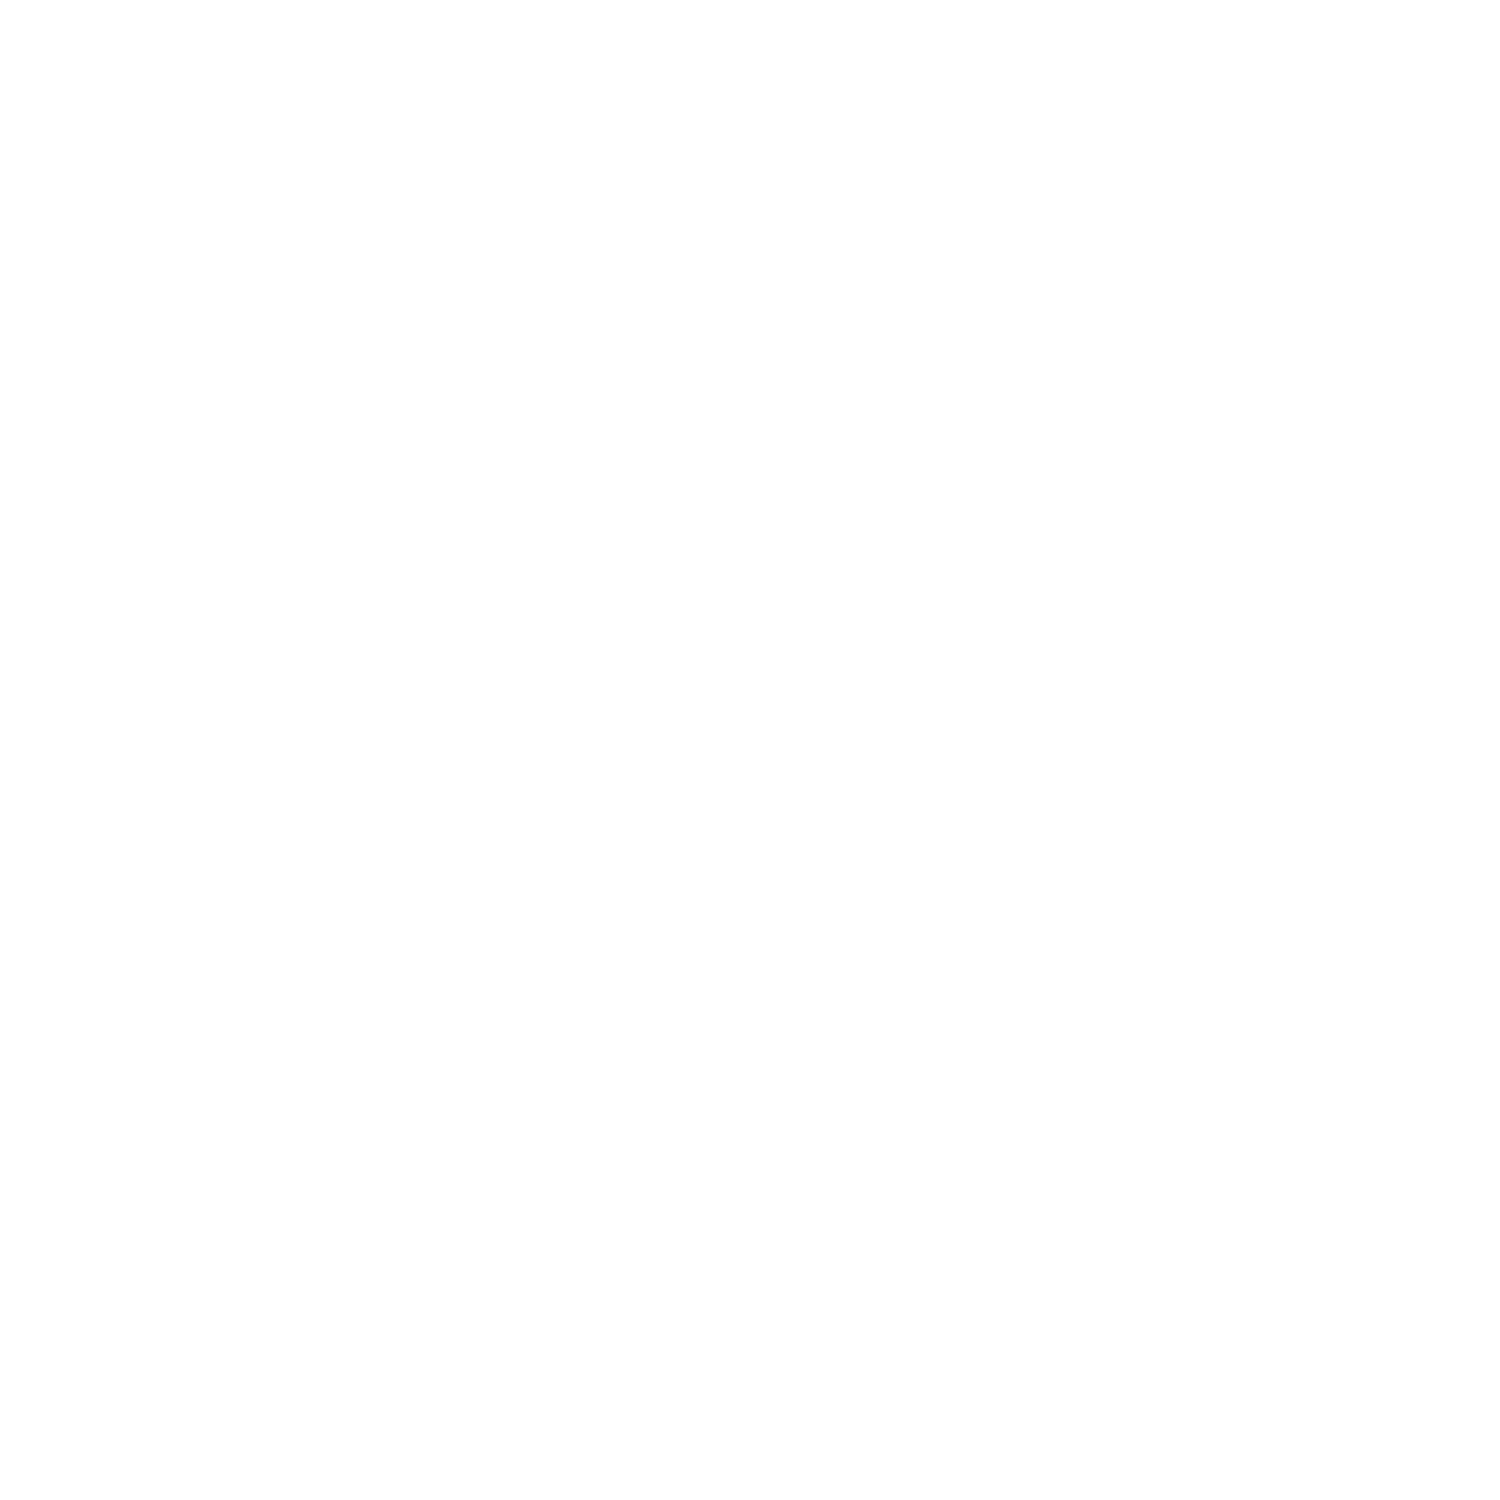 Joplin Greenhouse and The Coffee Shop